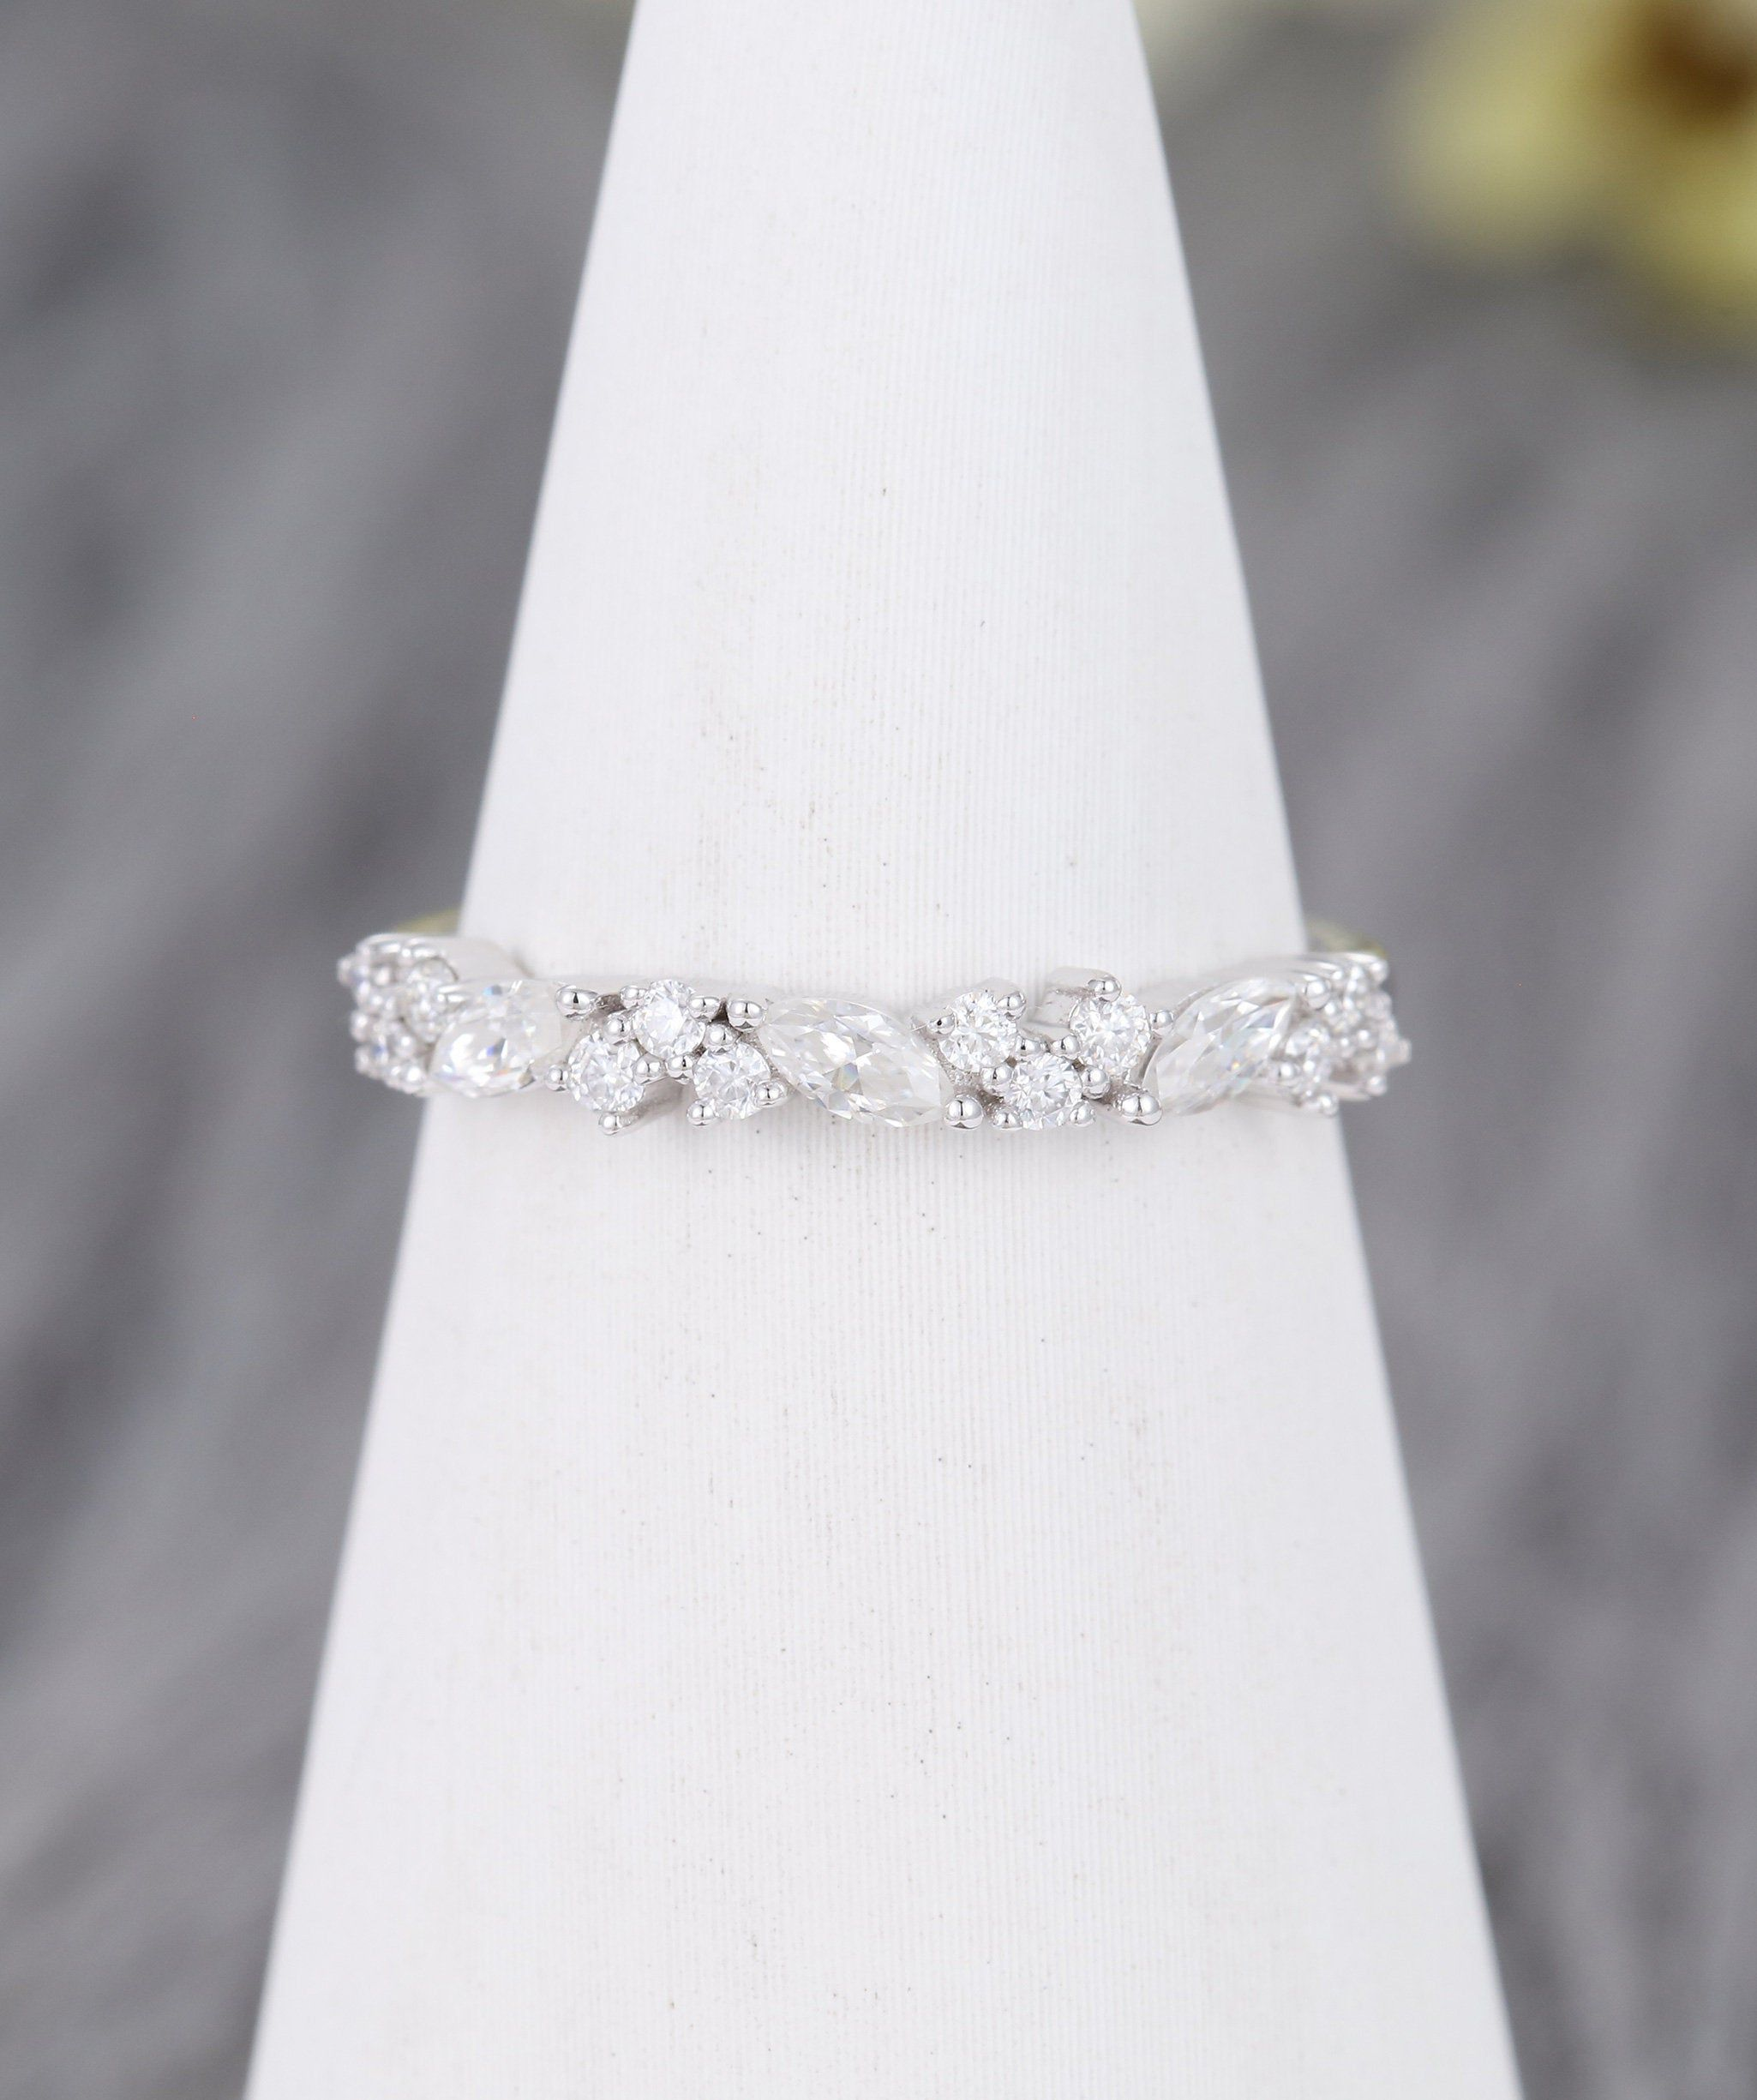 Wedding Band White Gold Moissanite Marquise Curved Wedding Band Women Diamond Wedding Band Matching Ring Stacking Ring Anniversary Gift